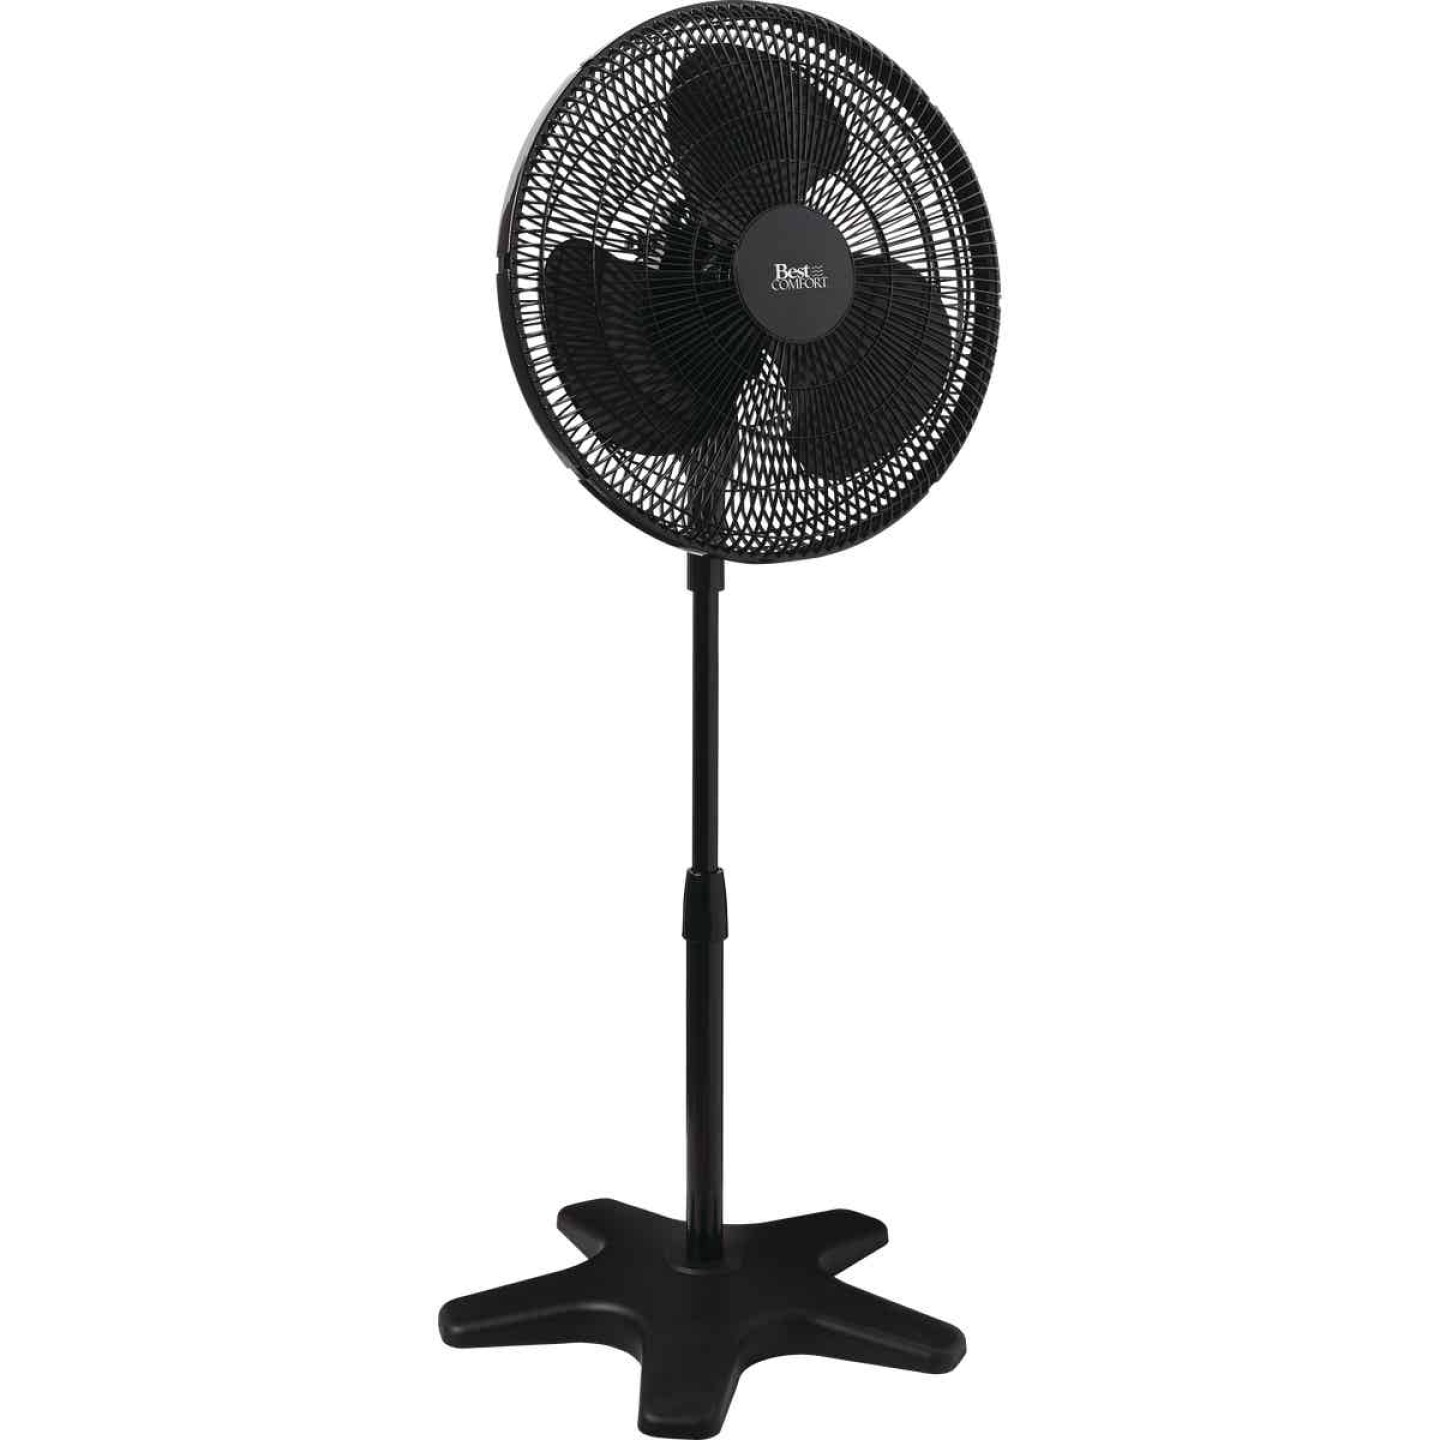 Best Comfort 16 In. 3-Speed 38 In. to 49 In. H. Black Oscillating Pedestal Fan Image 1